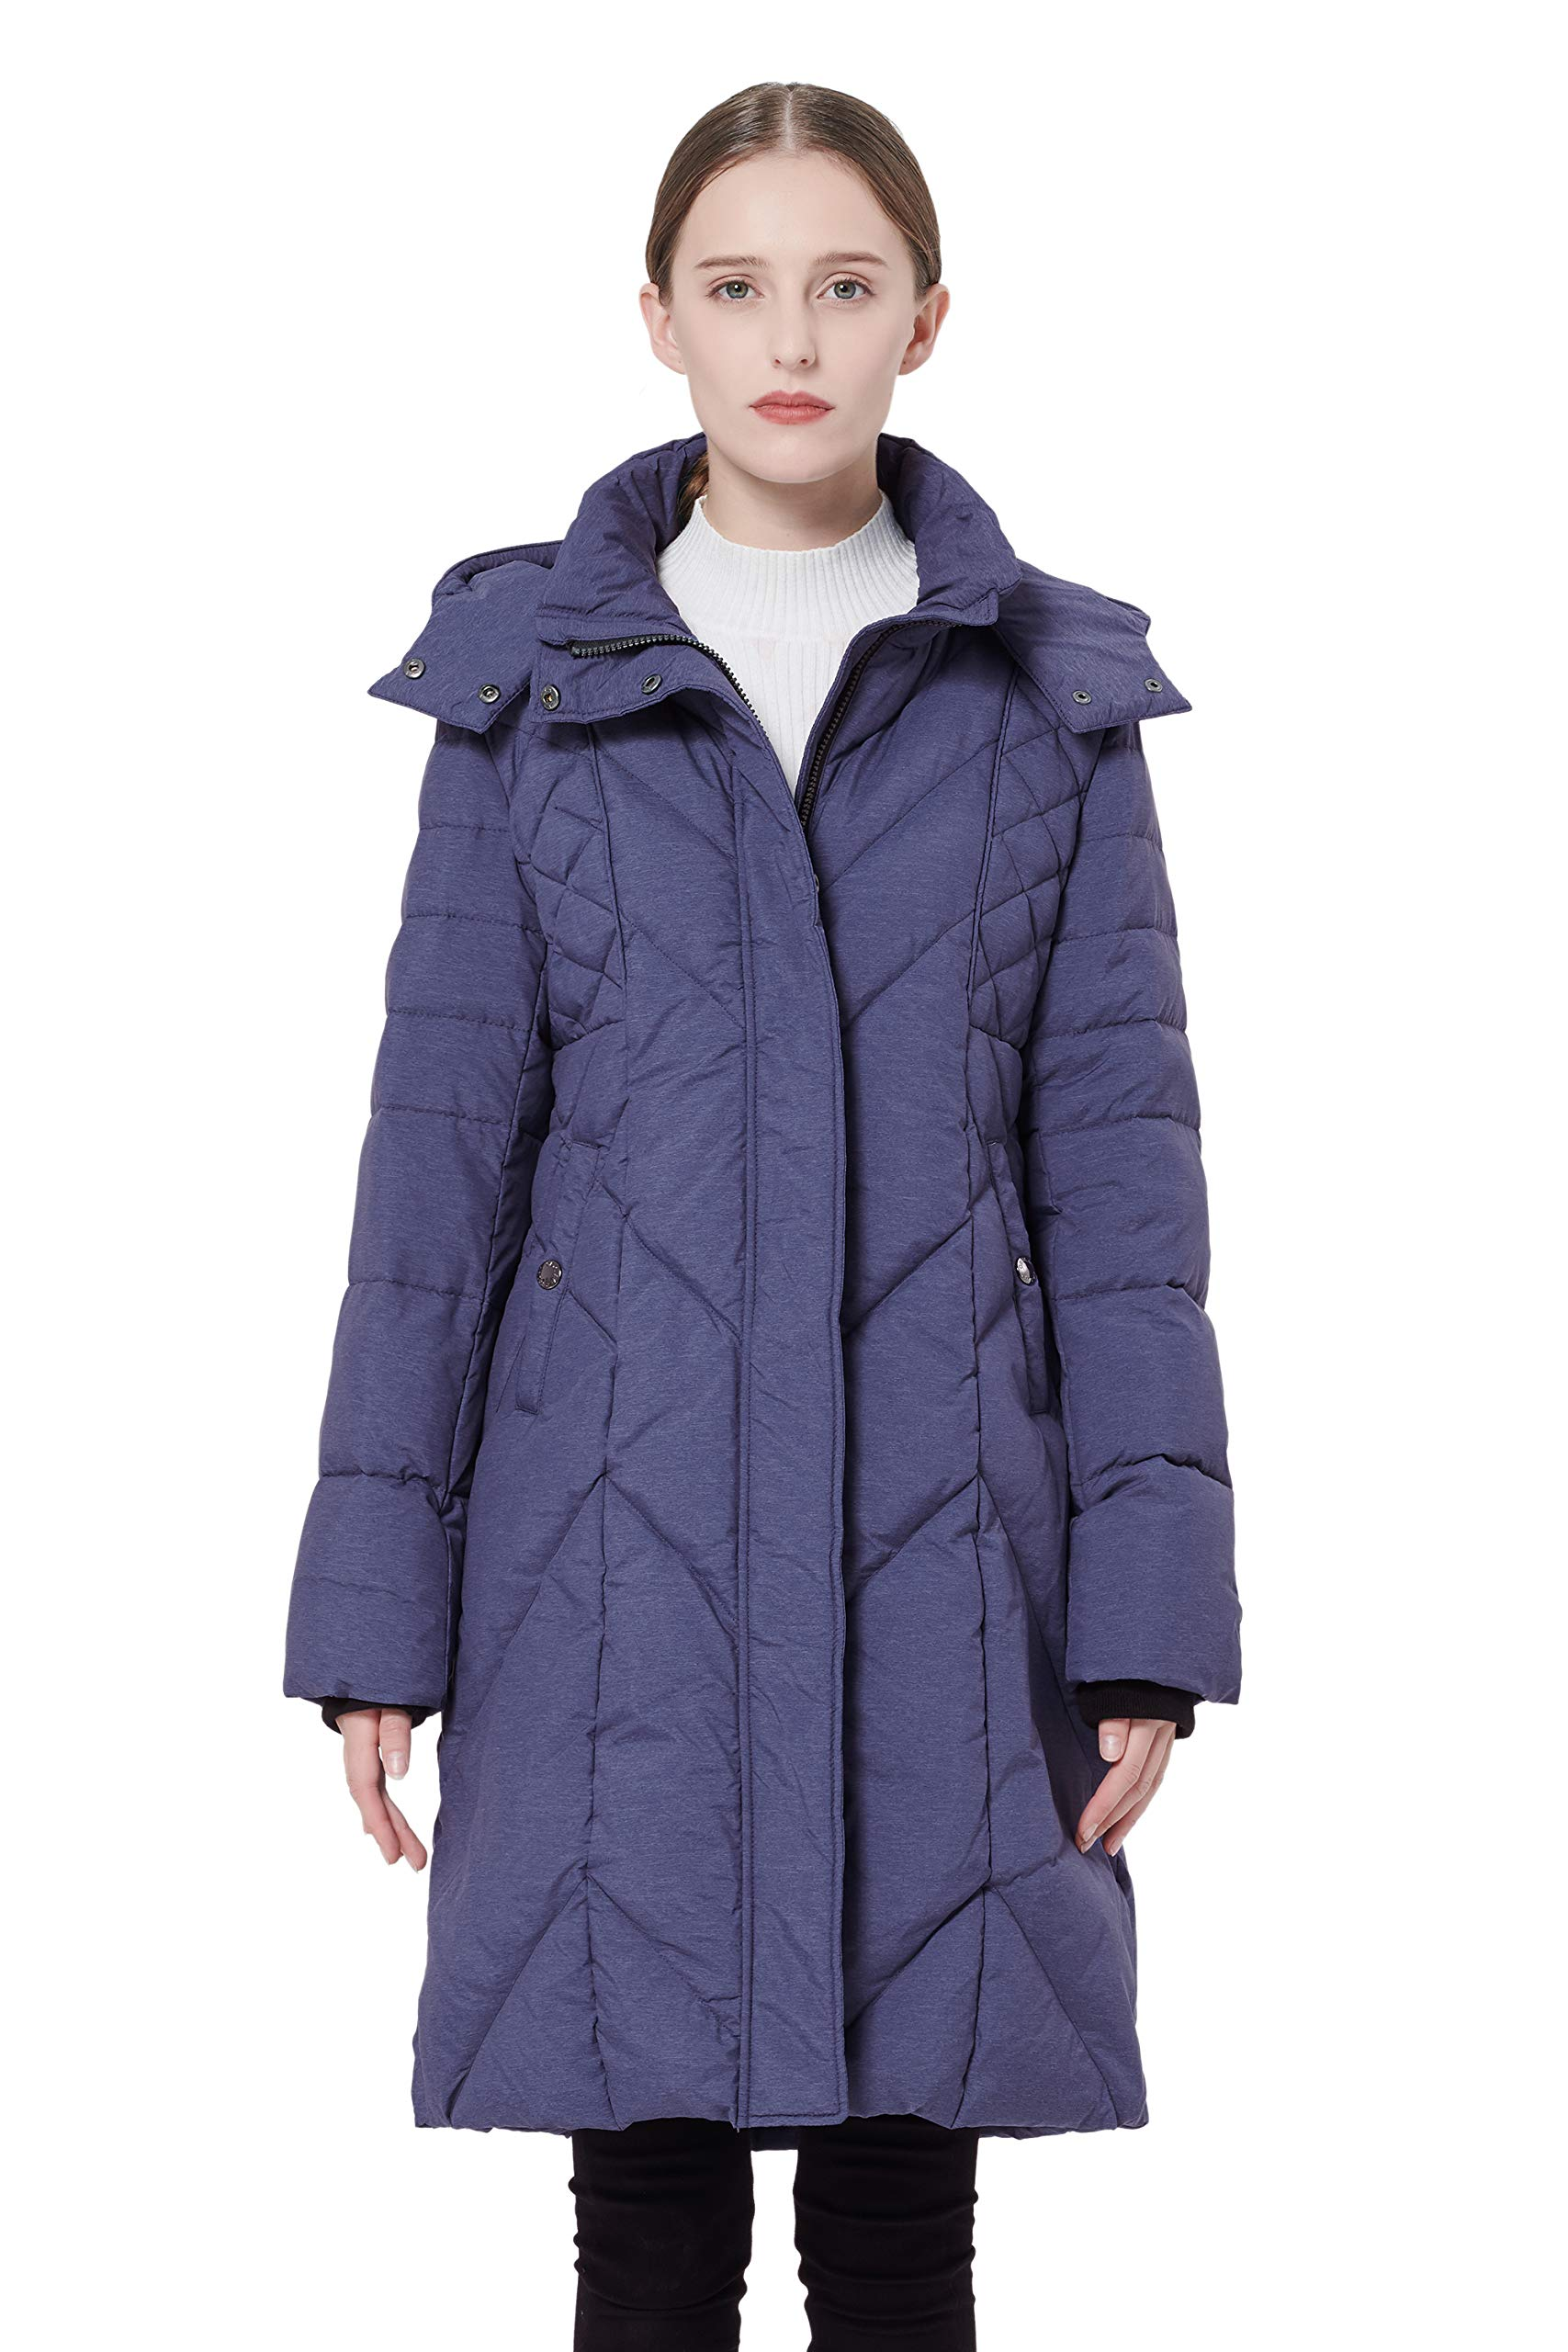 Orolay Women's Thickened Down Jacket with Hood Darkgrey